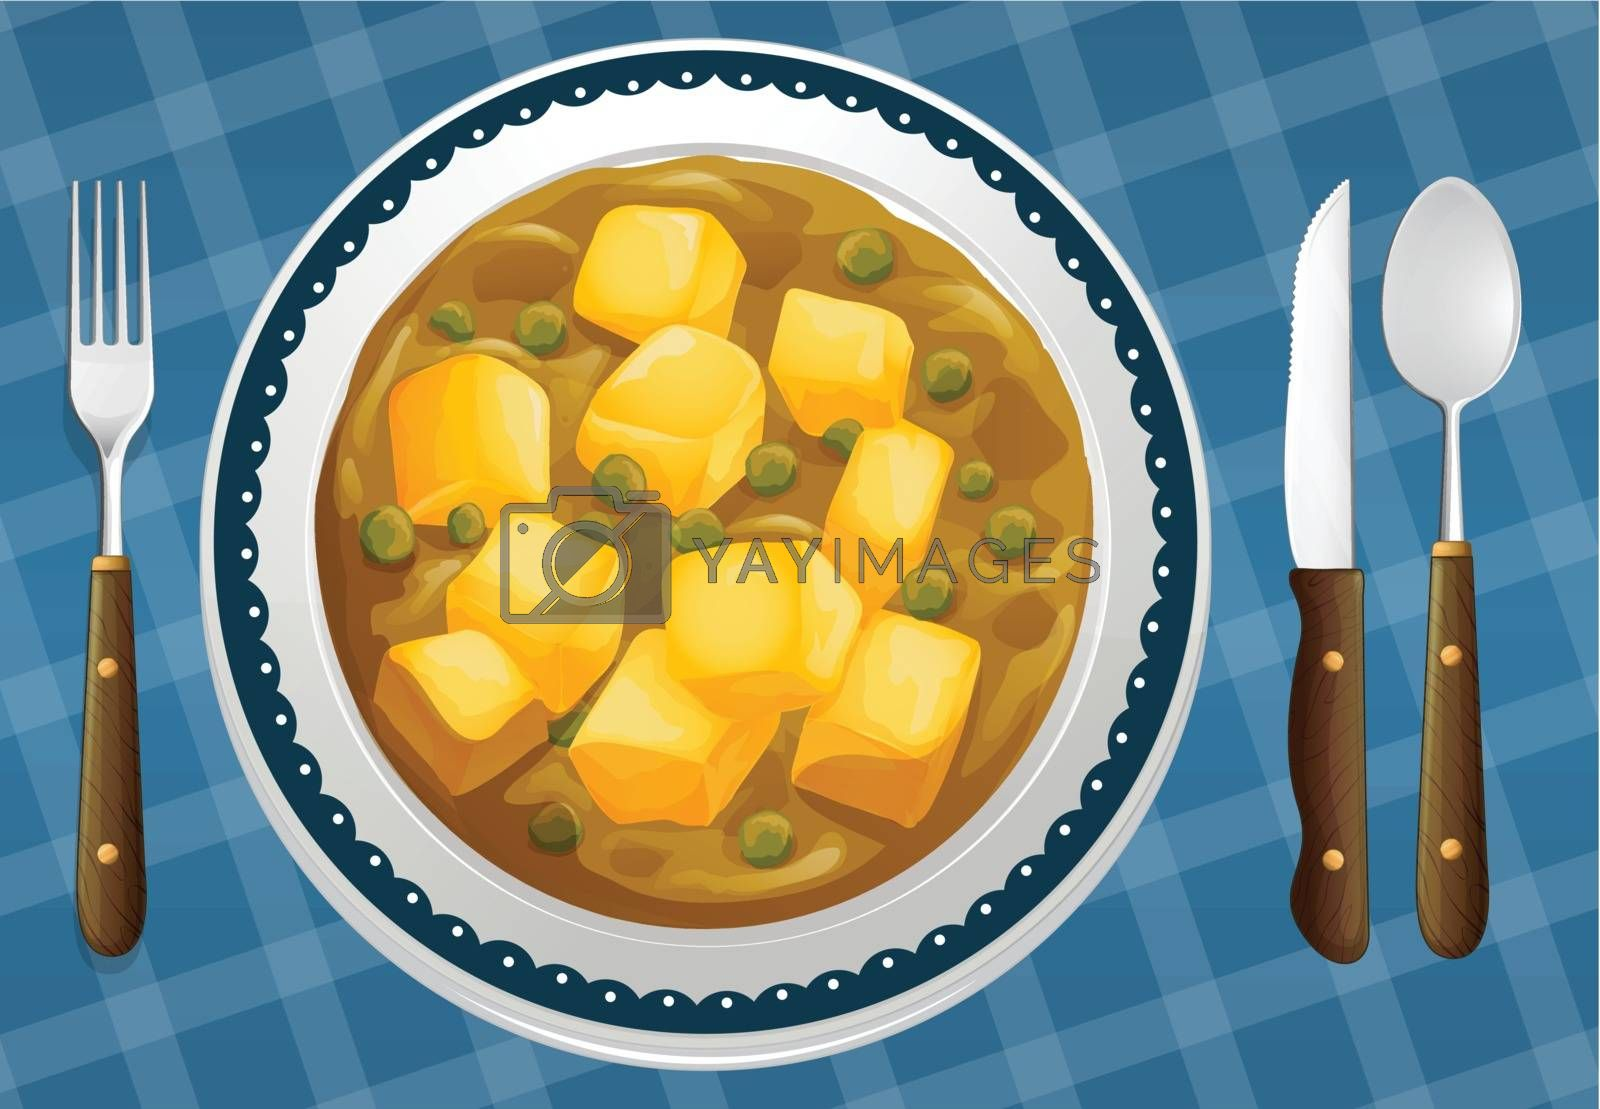 illustration of a food and a dish on a blue background